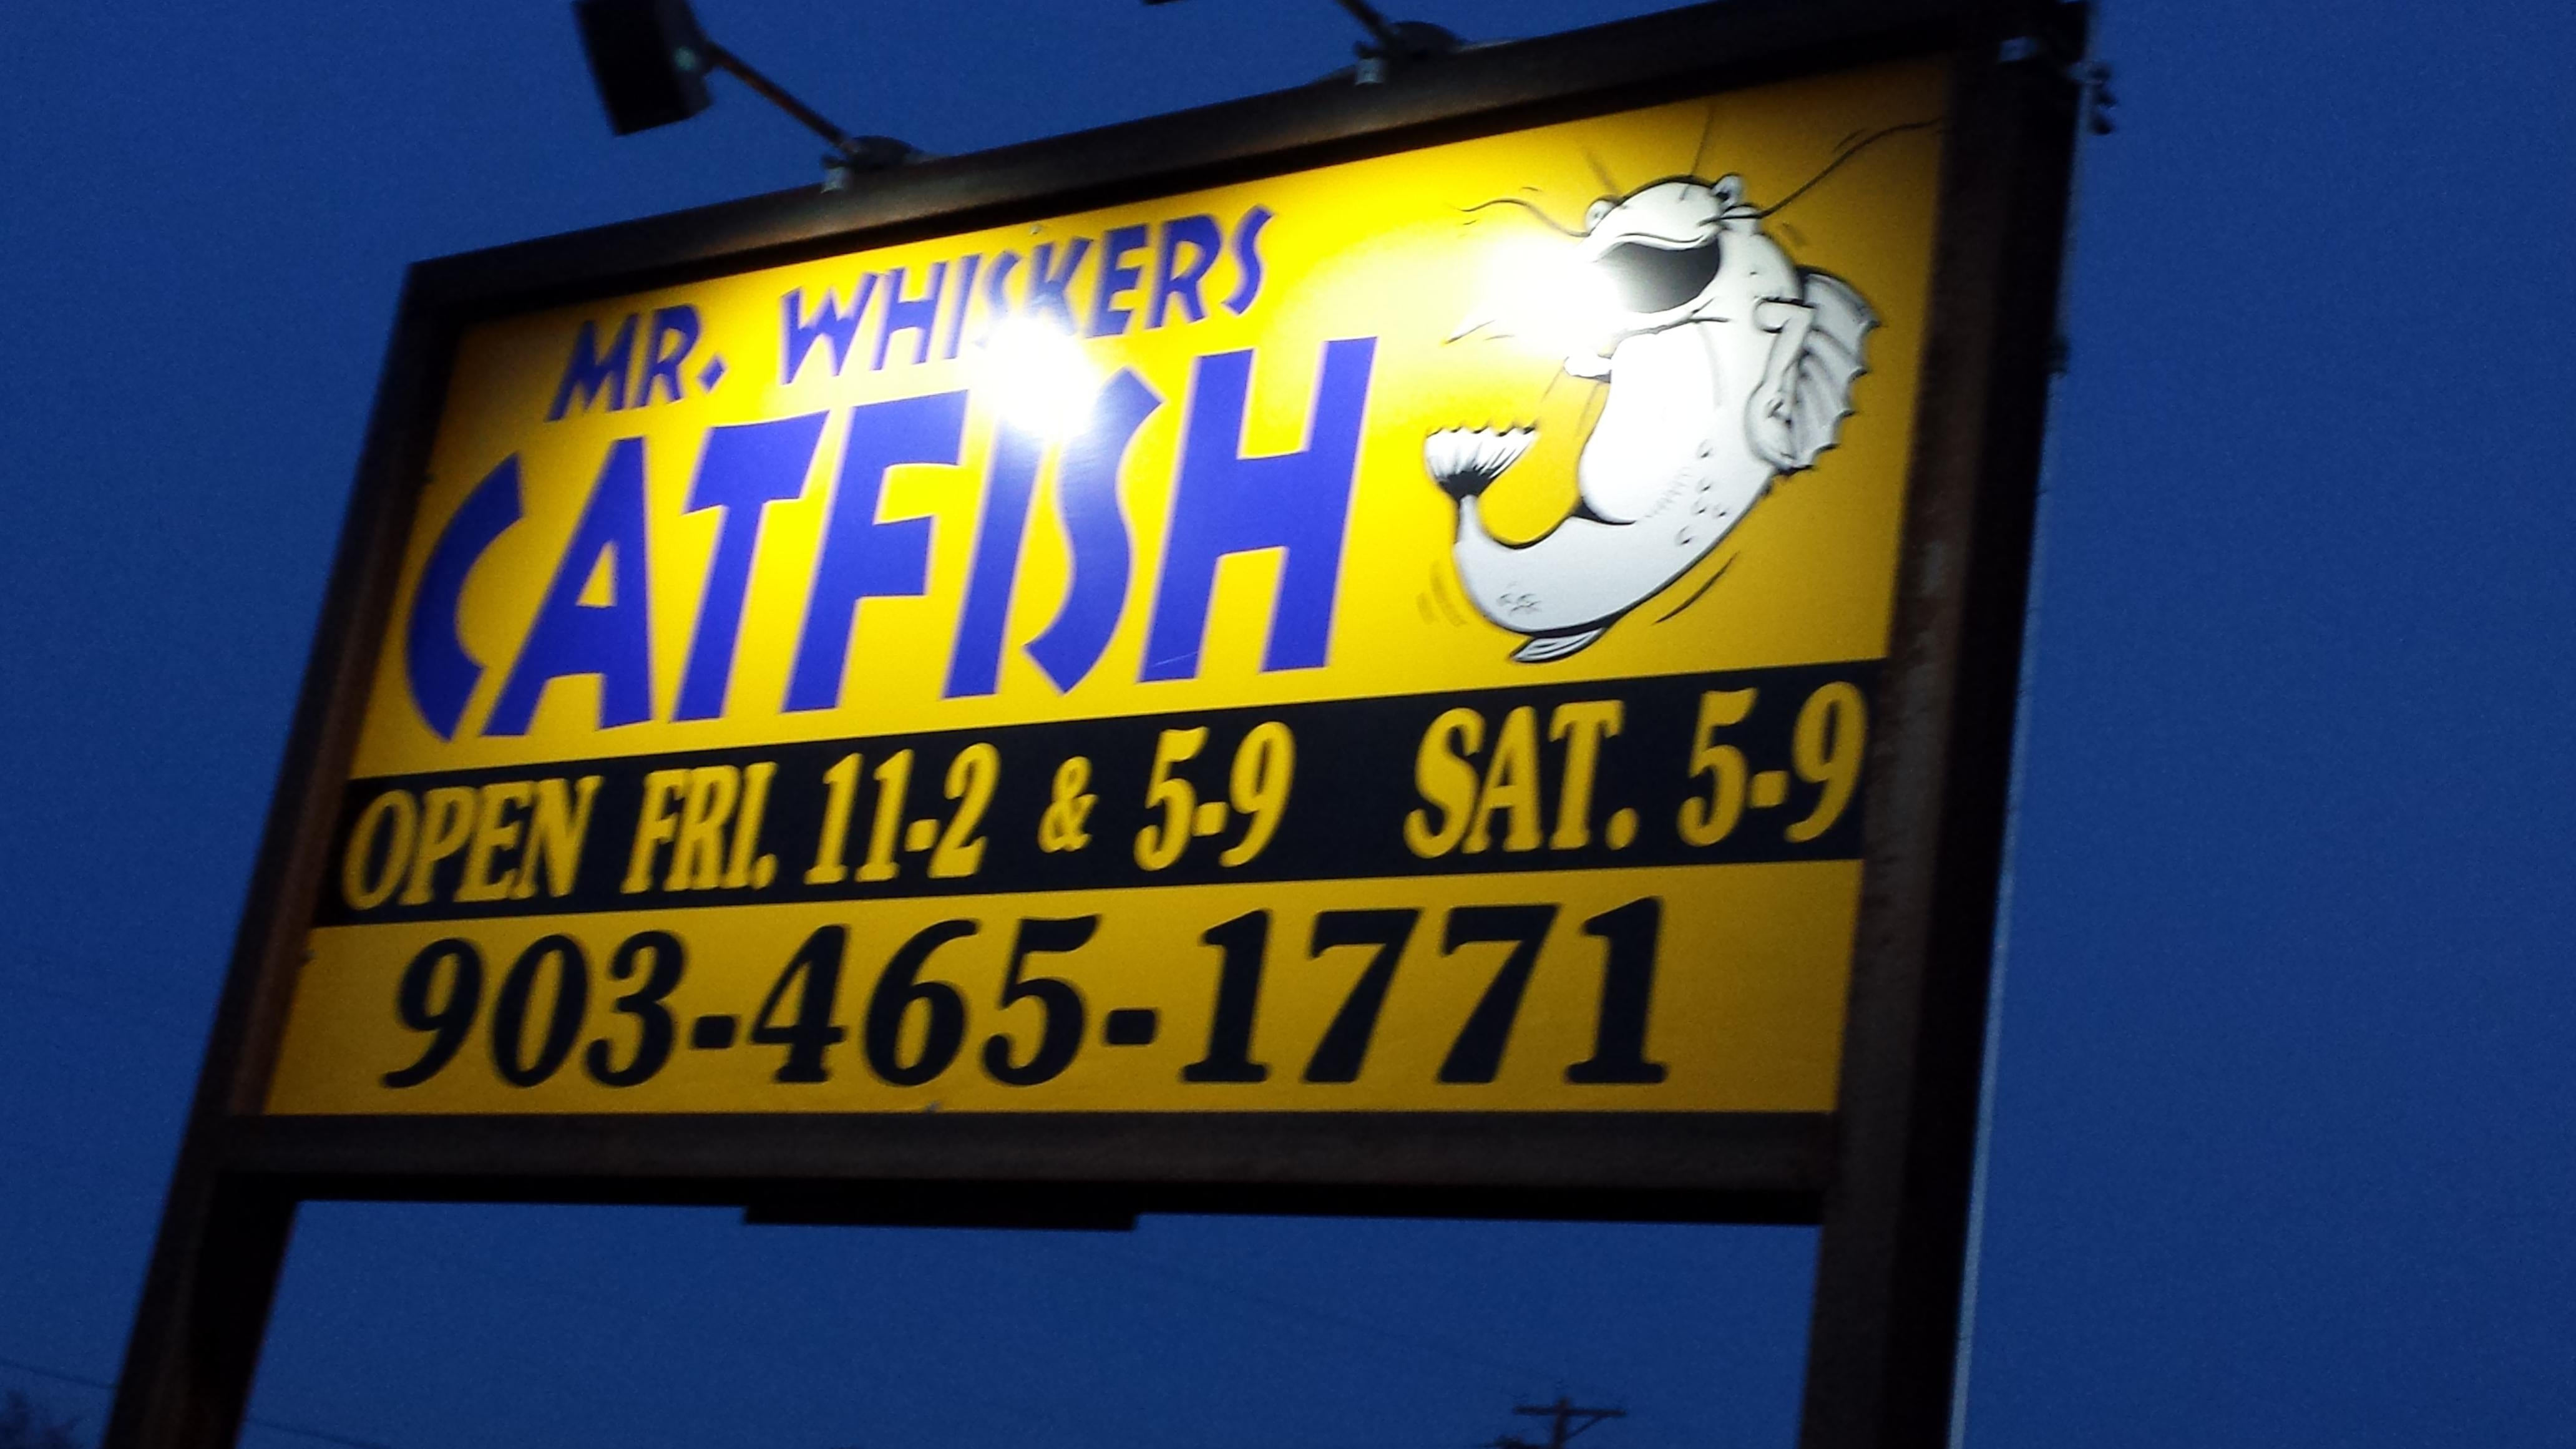 Mr Whiskers Catfish